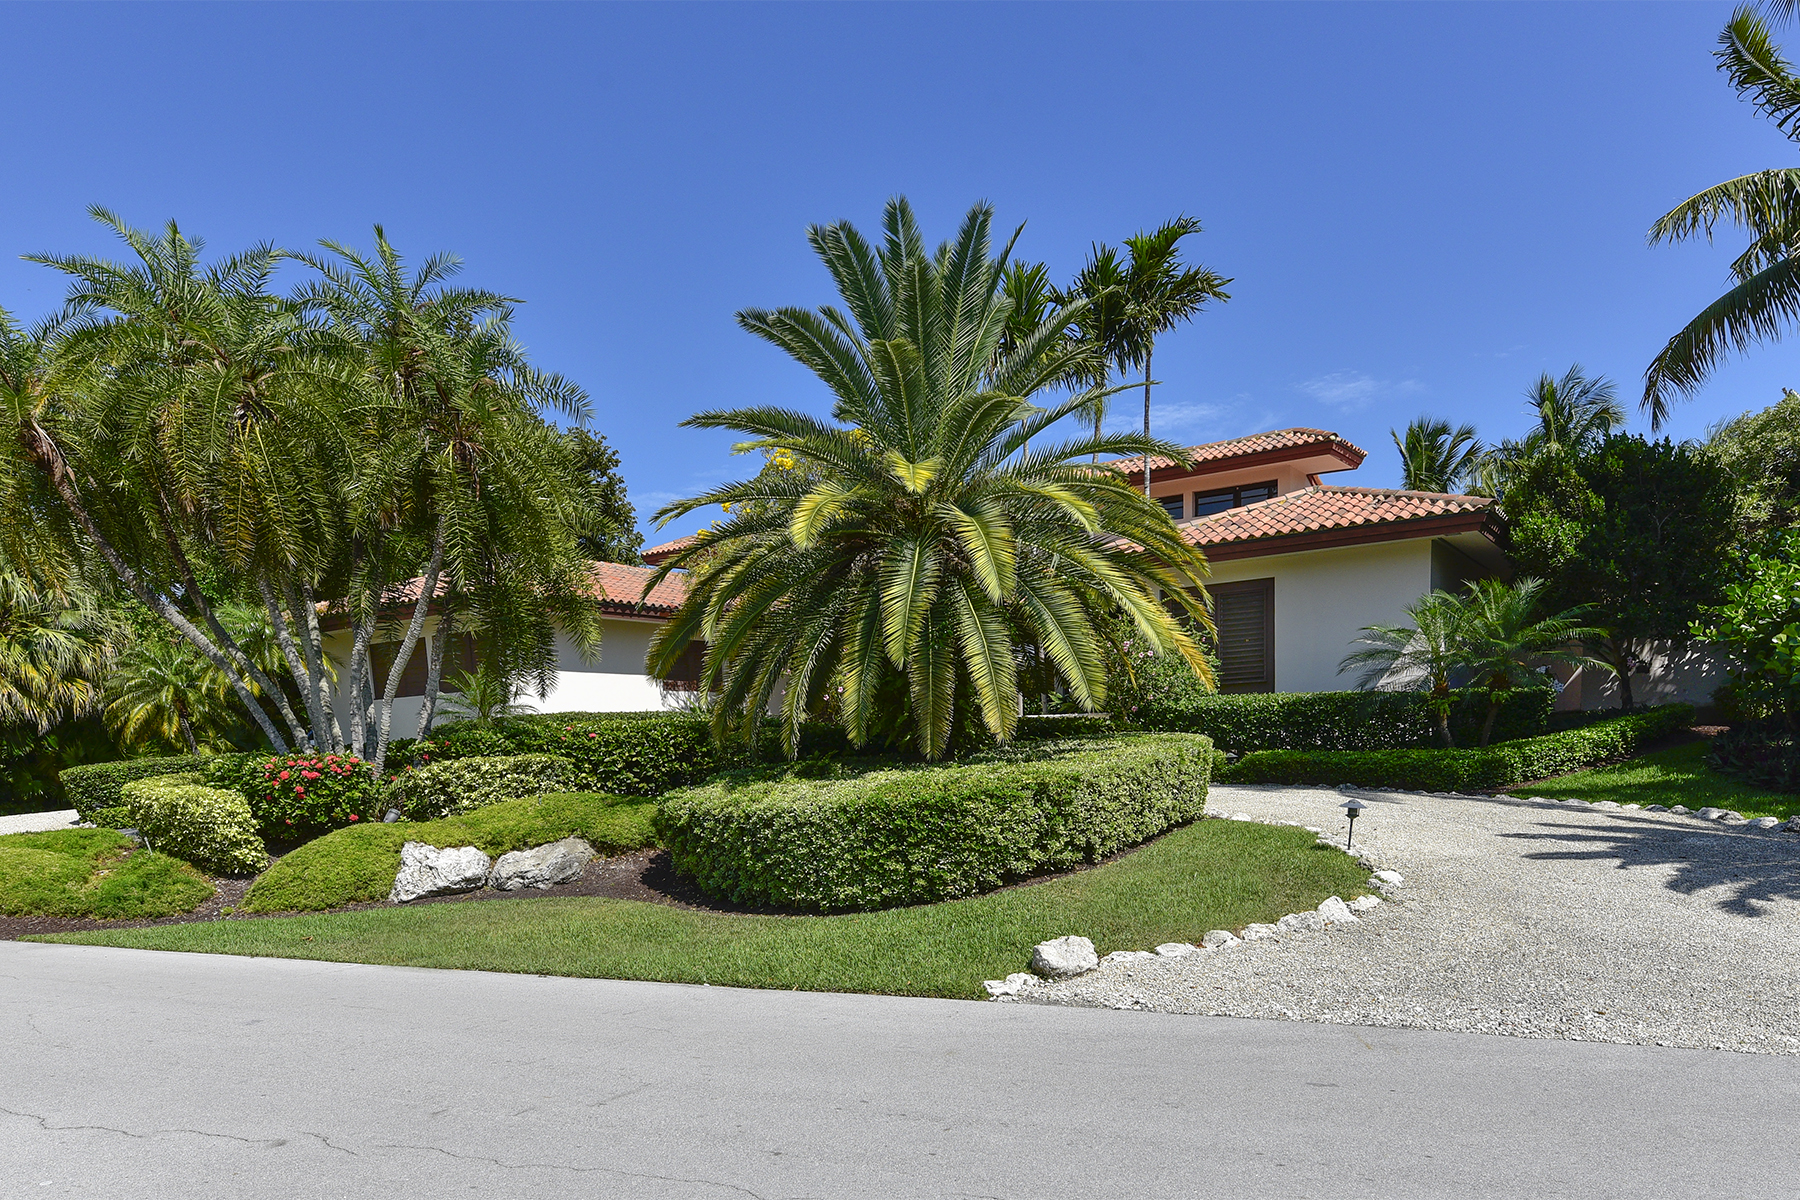 Single Family Home for Sale at Waterfront Home at Ocean Reef 30 East Snapper Point Drive Key Largo, Florida 33037 United States